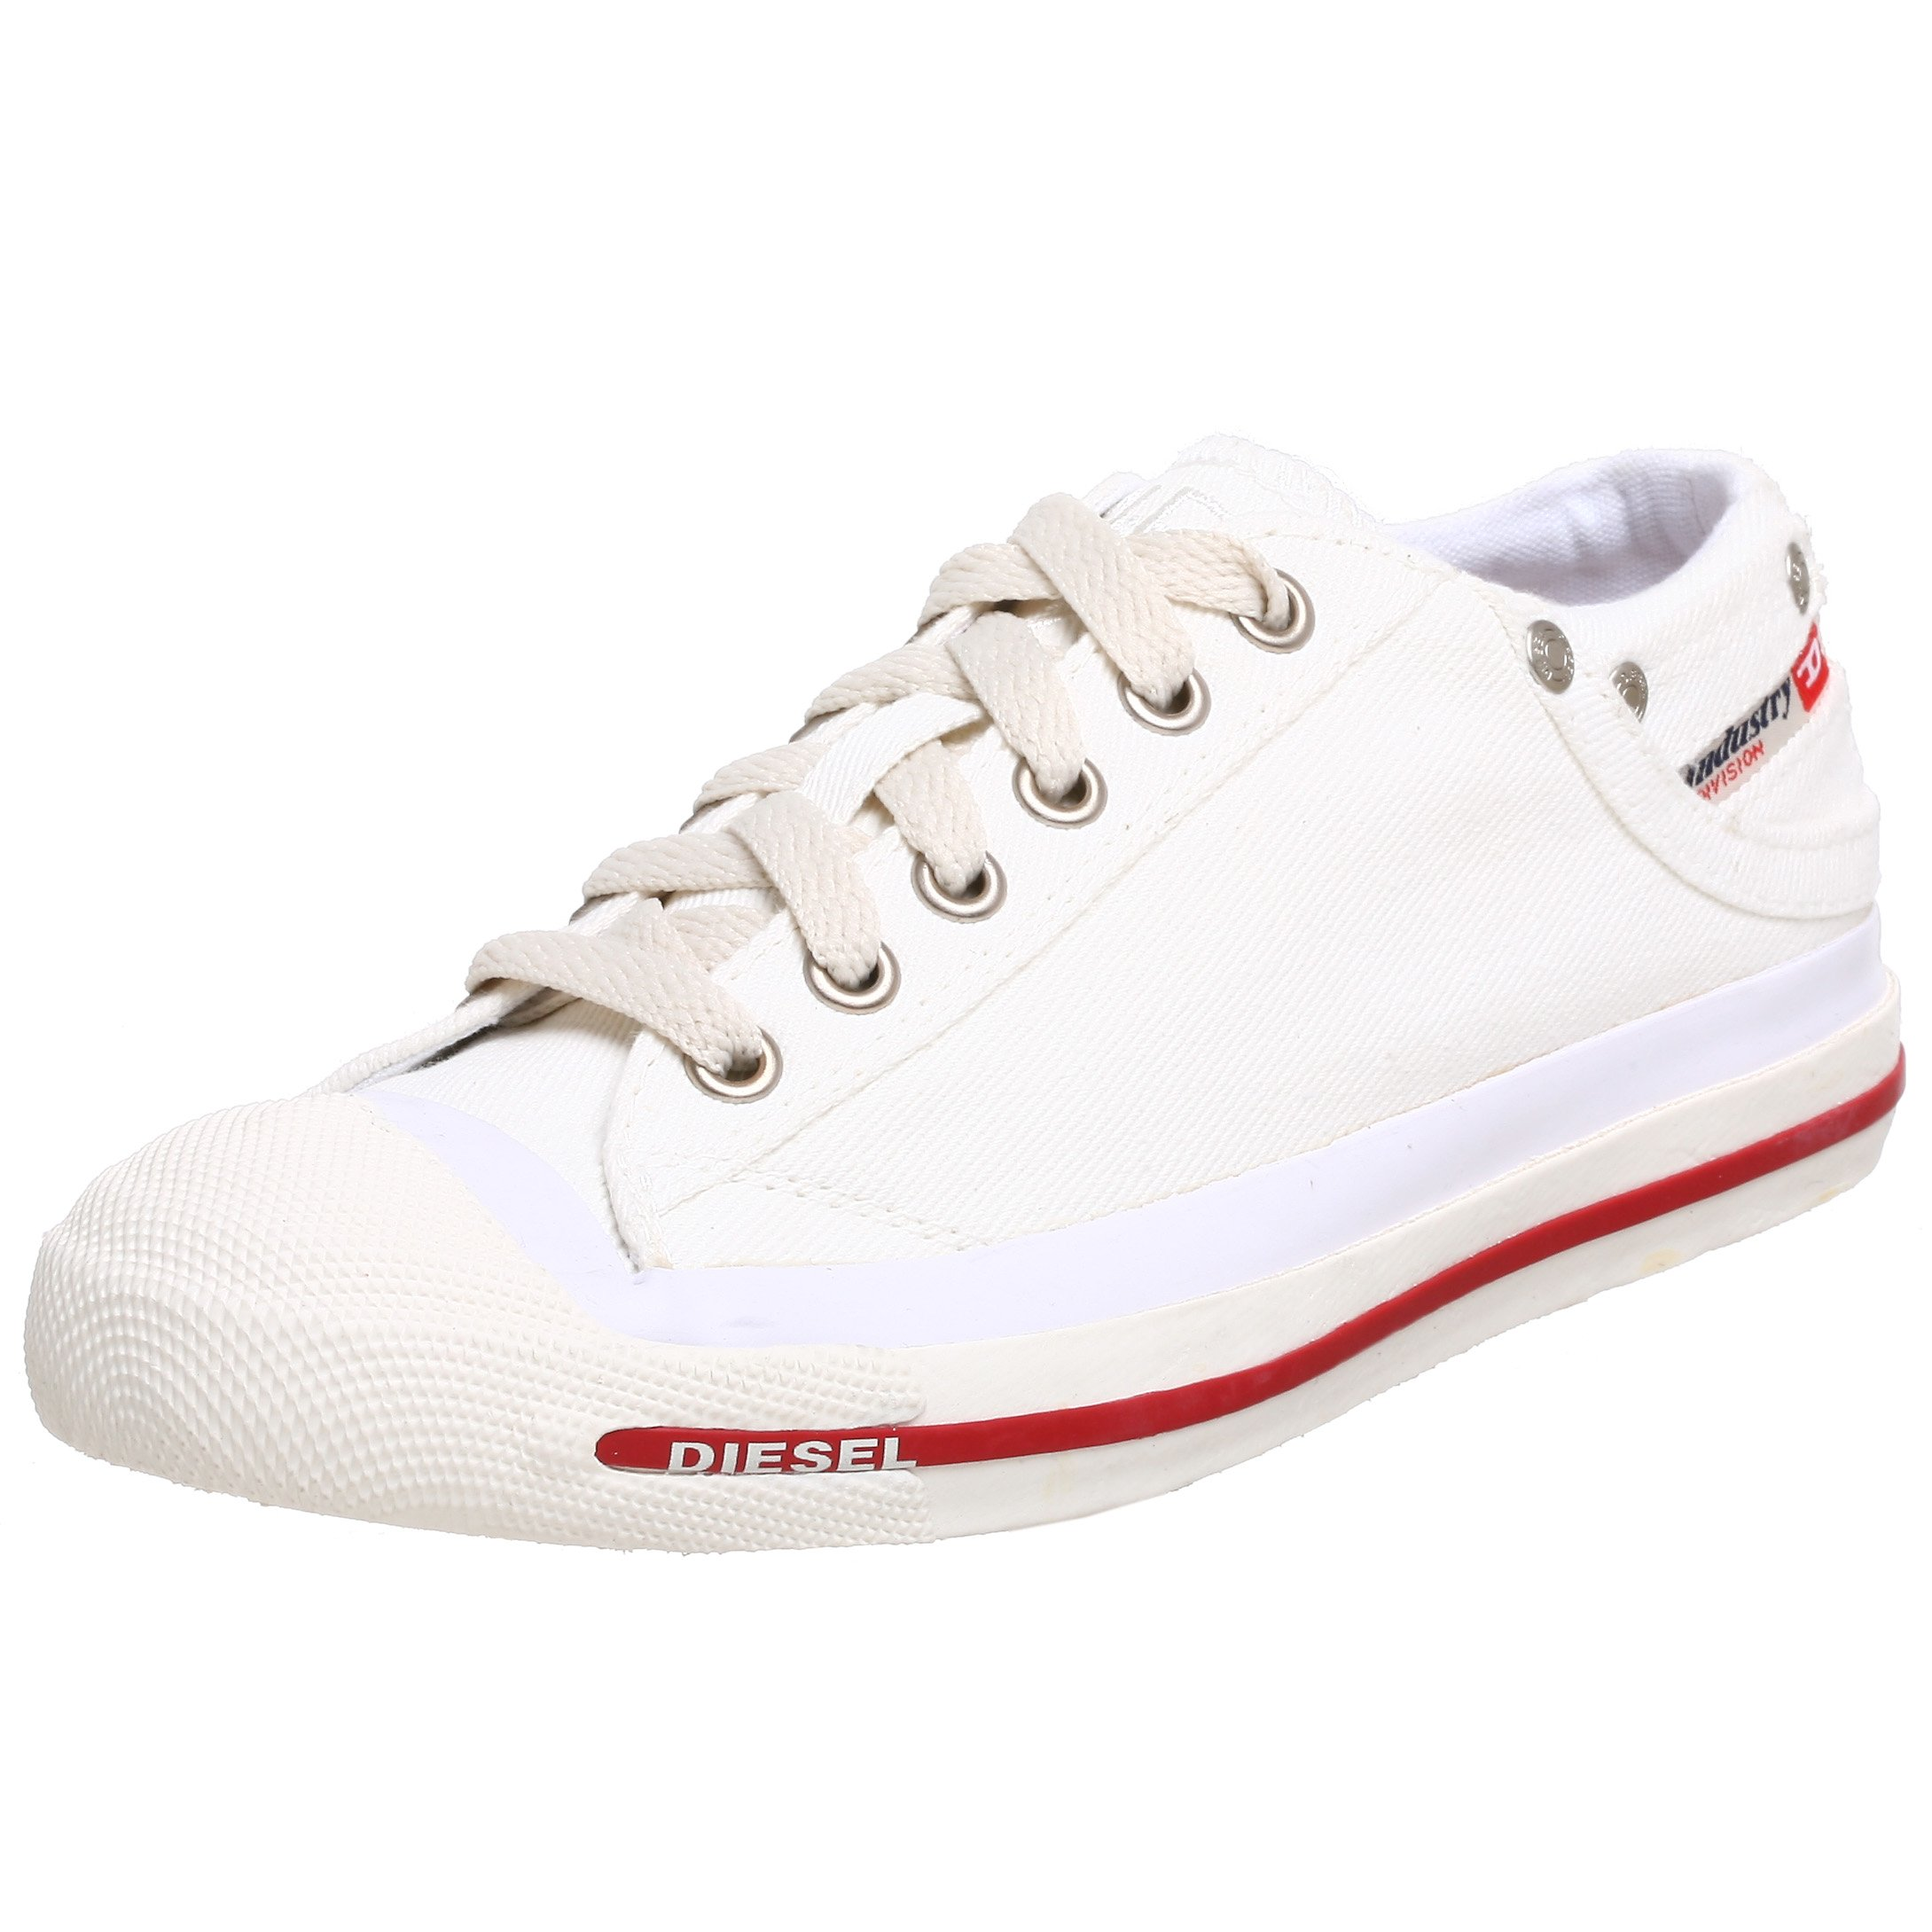 Diesel Women's Exposure Low Sneaker,Snow/White,9.5 M